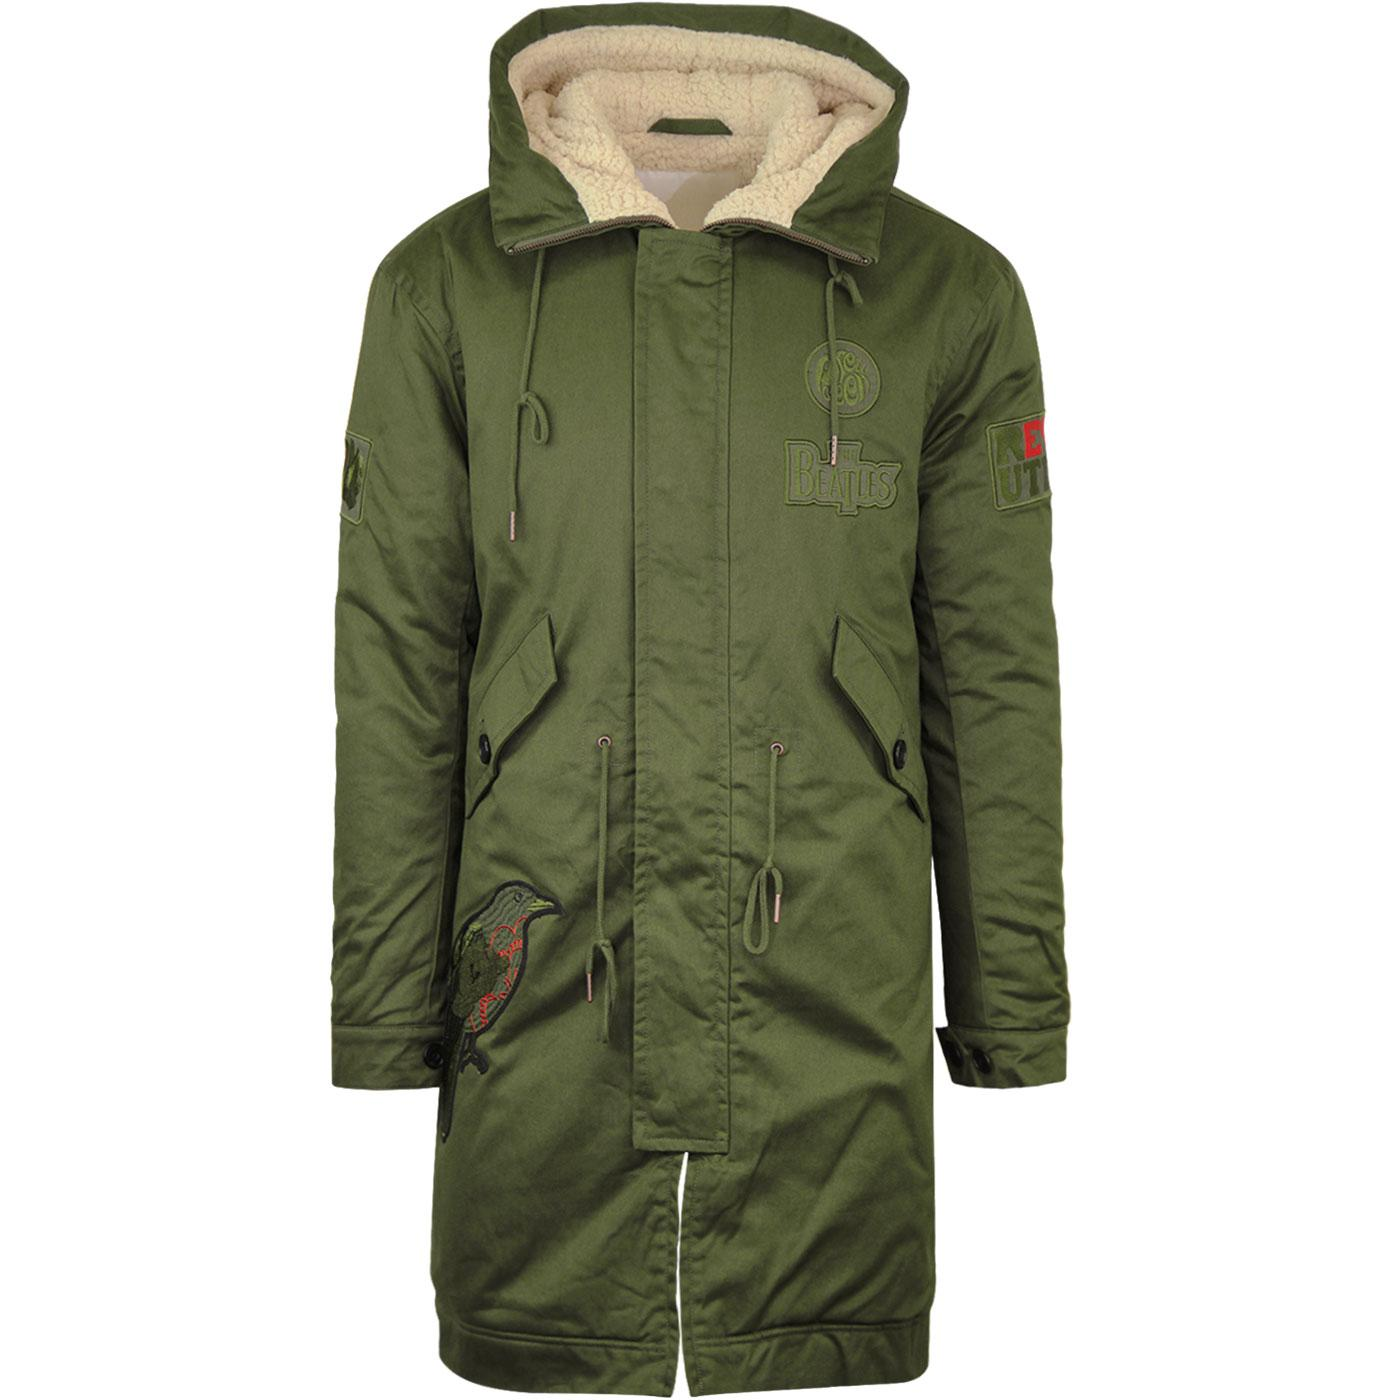 Pretty Green Beatles Parka